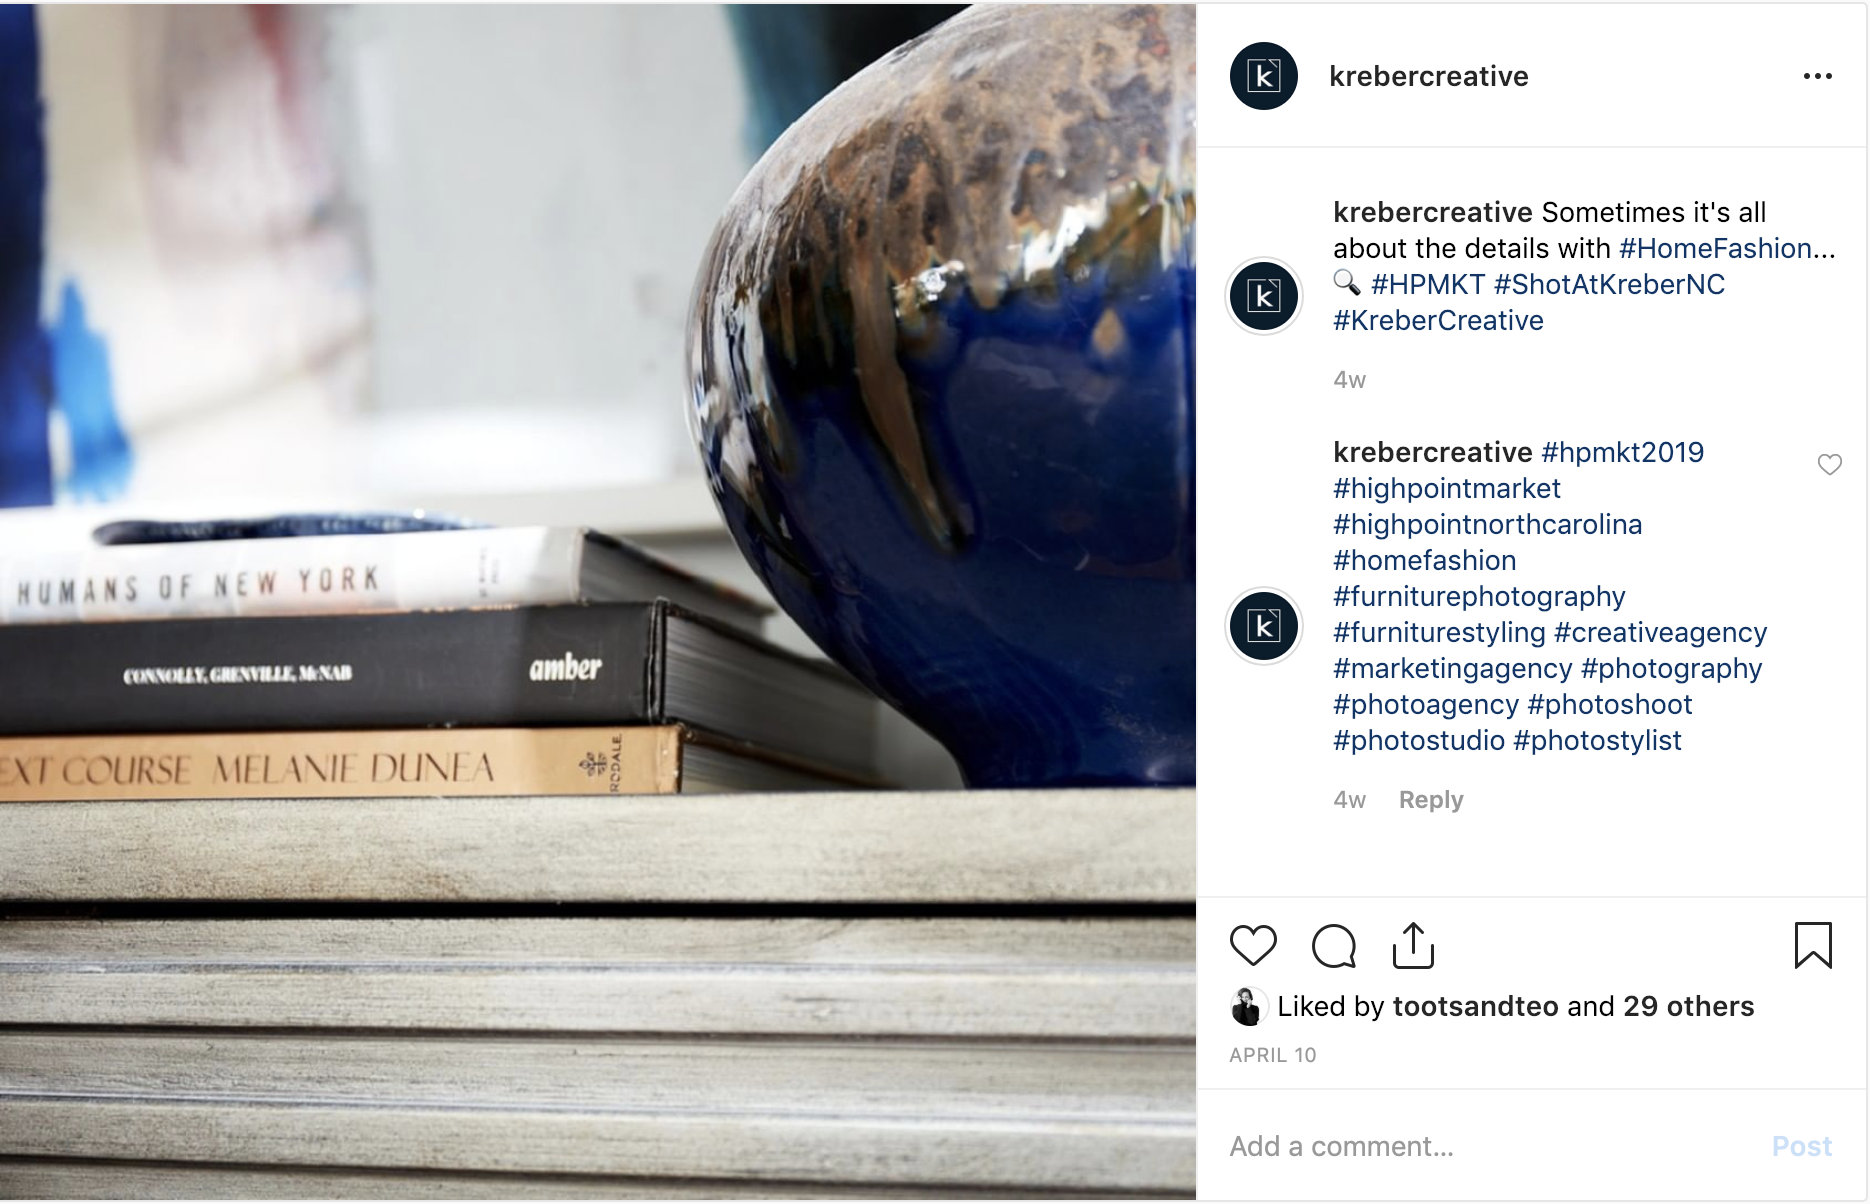 instagram-screenshot-books-on-shelf-vase-art